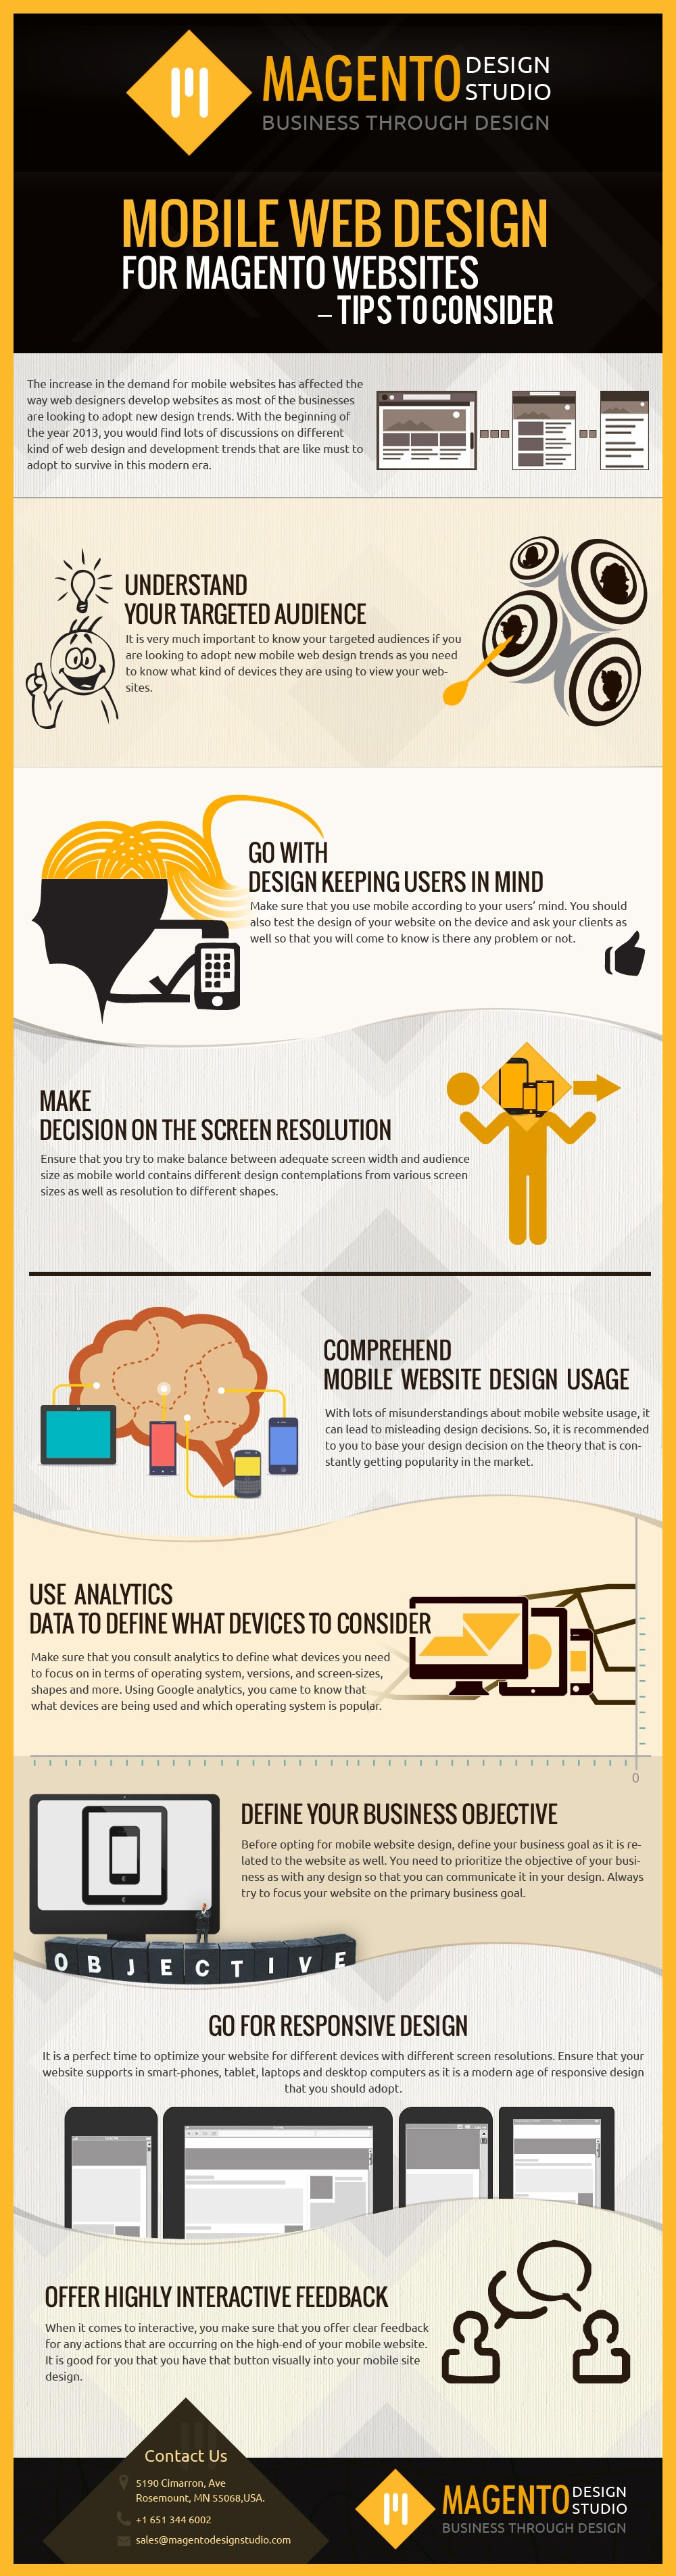 Top Mobile Web Design Tips #Infographic